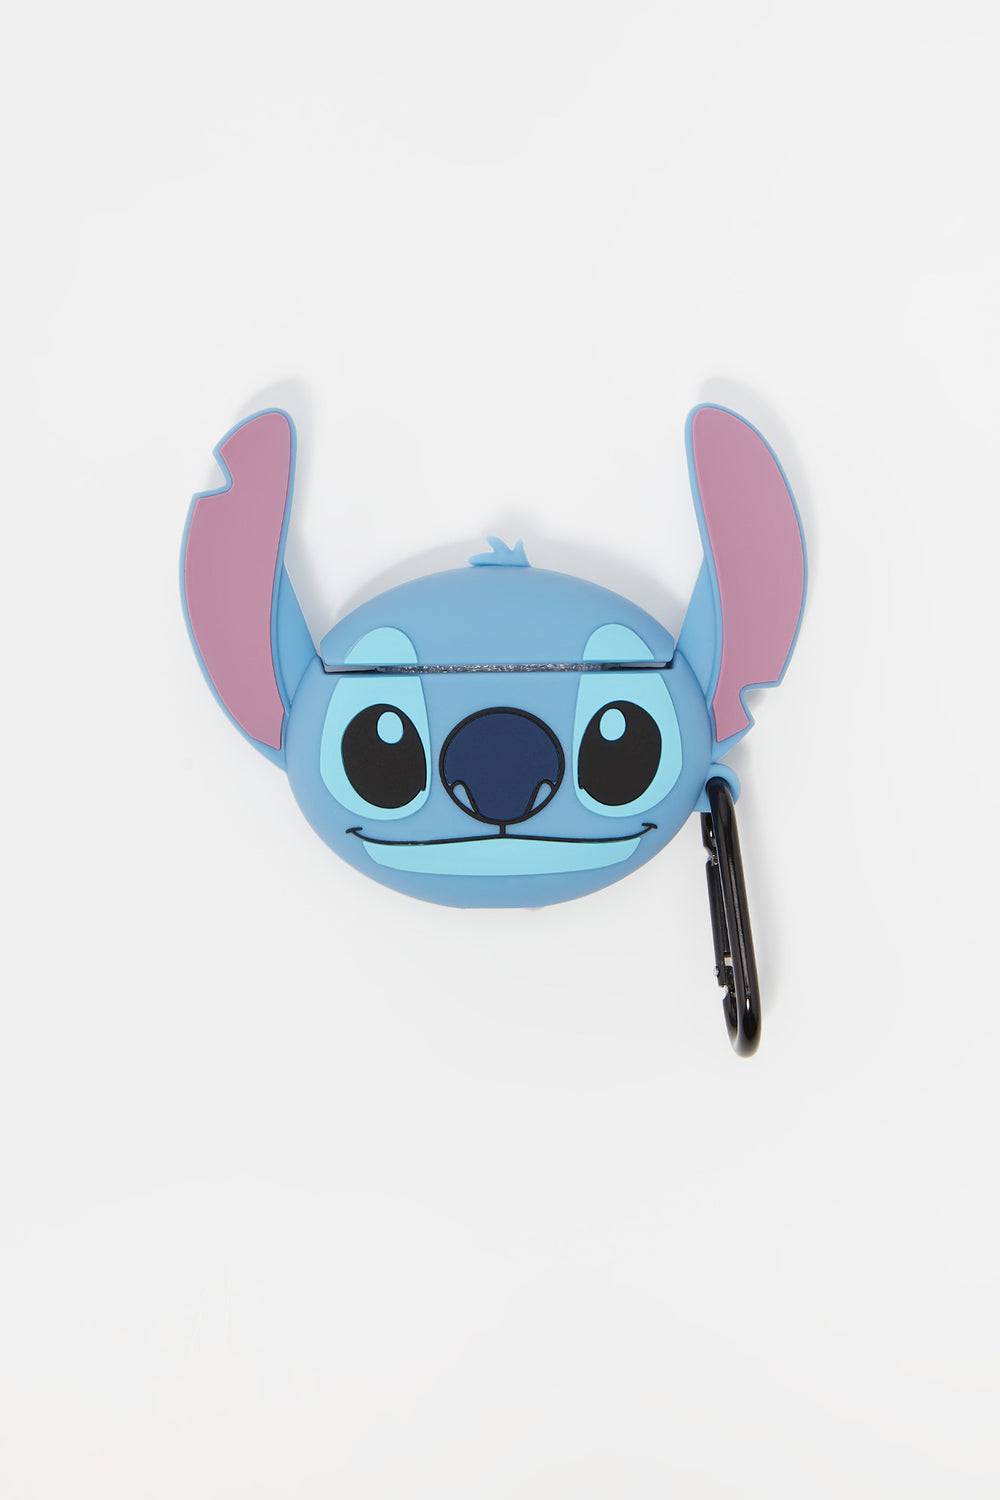 3D Character Airpod Case Blue